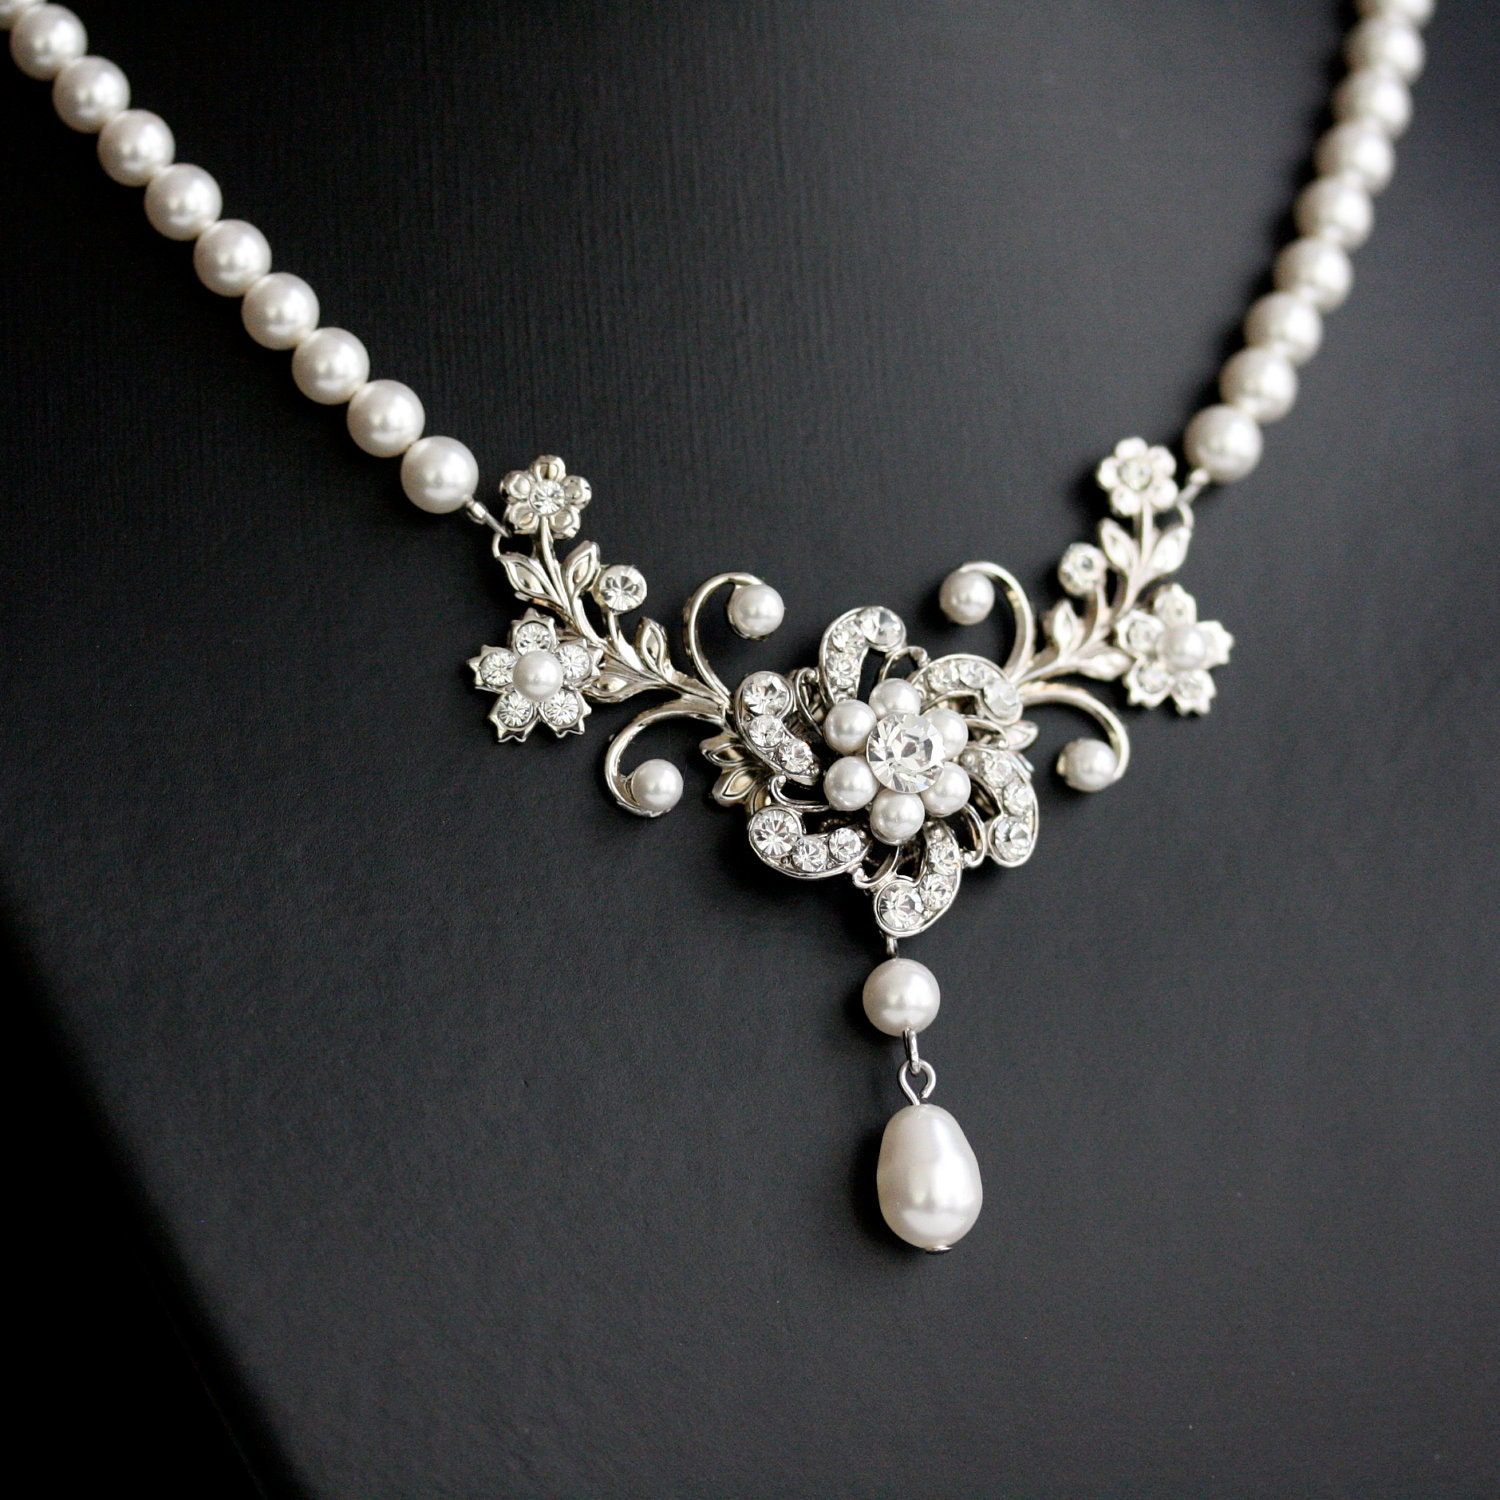 Wedding Necklace White Pearl necklace Vintage rhinestone